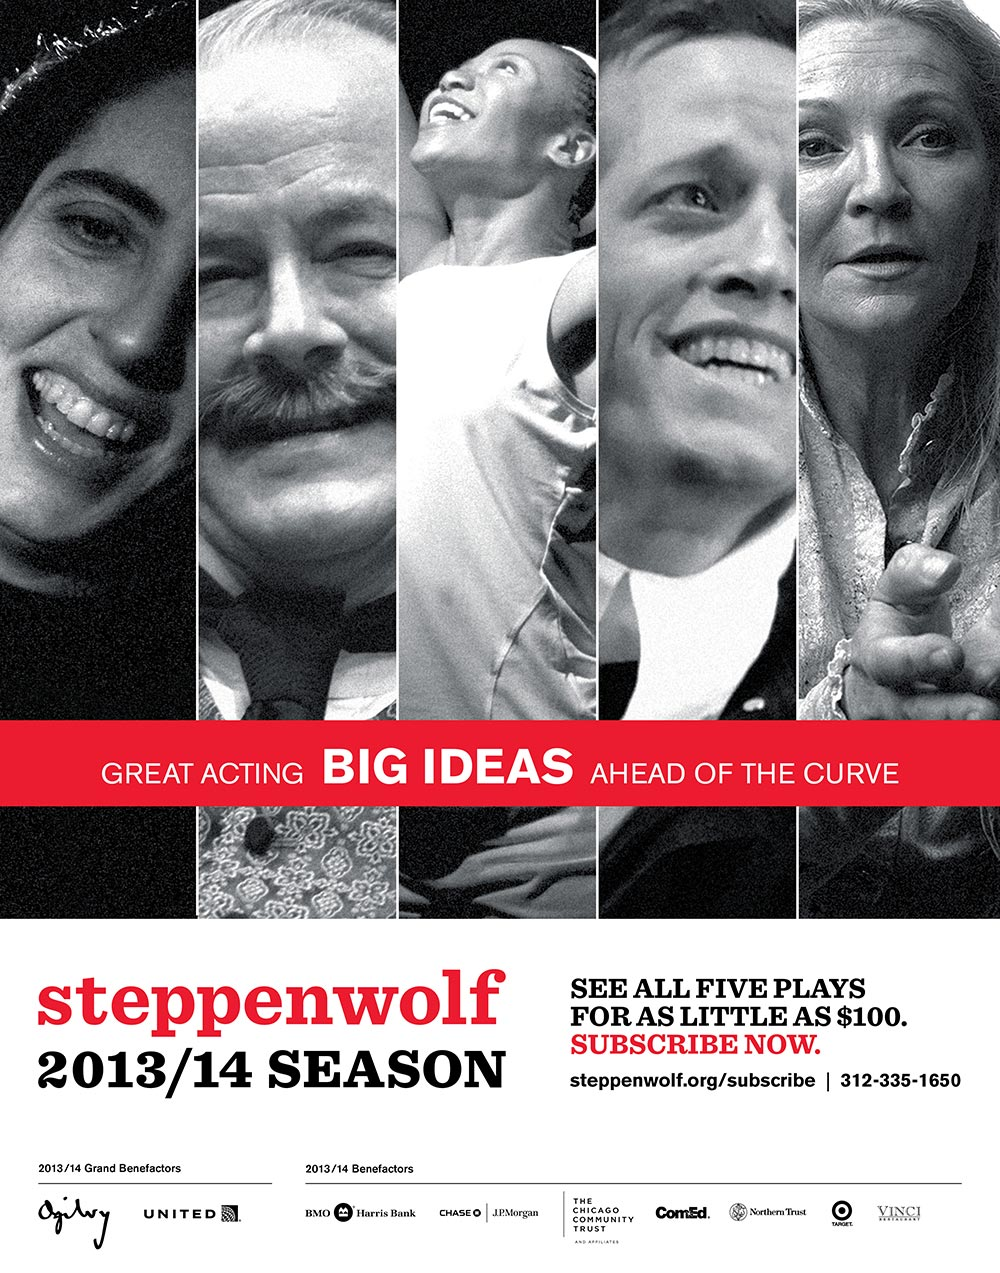 Steppenwolf_1314_Season_Poster.jpg